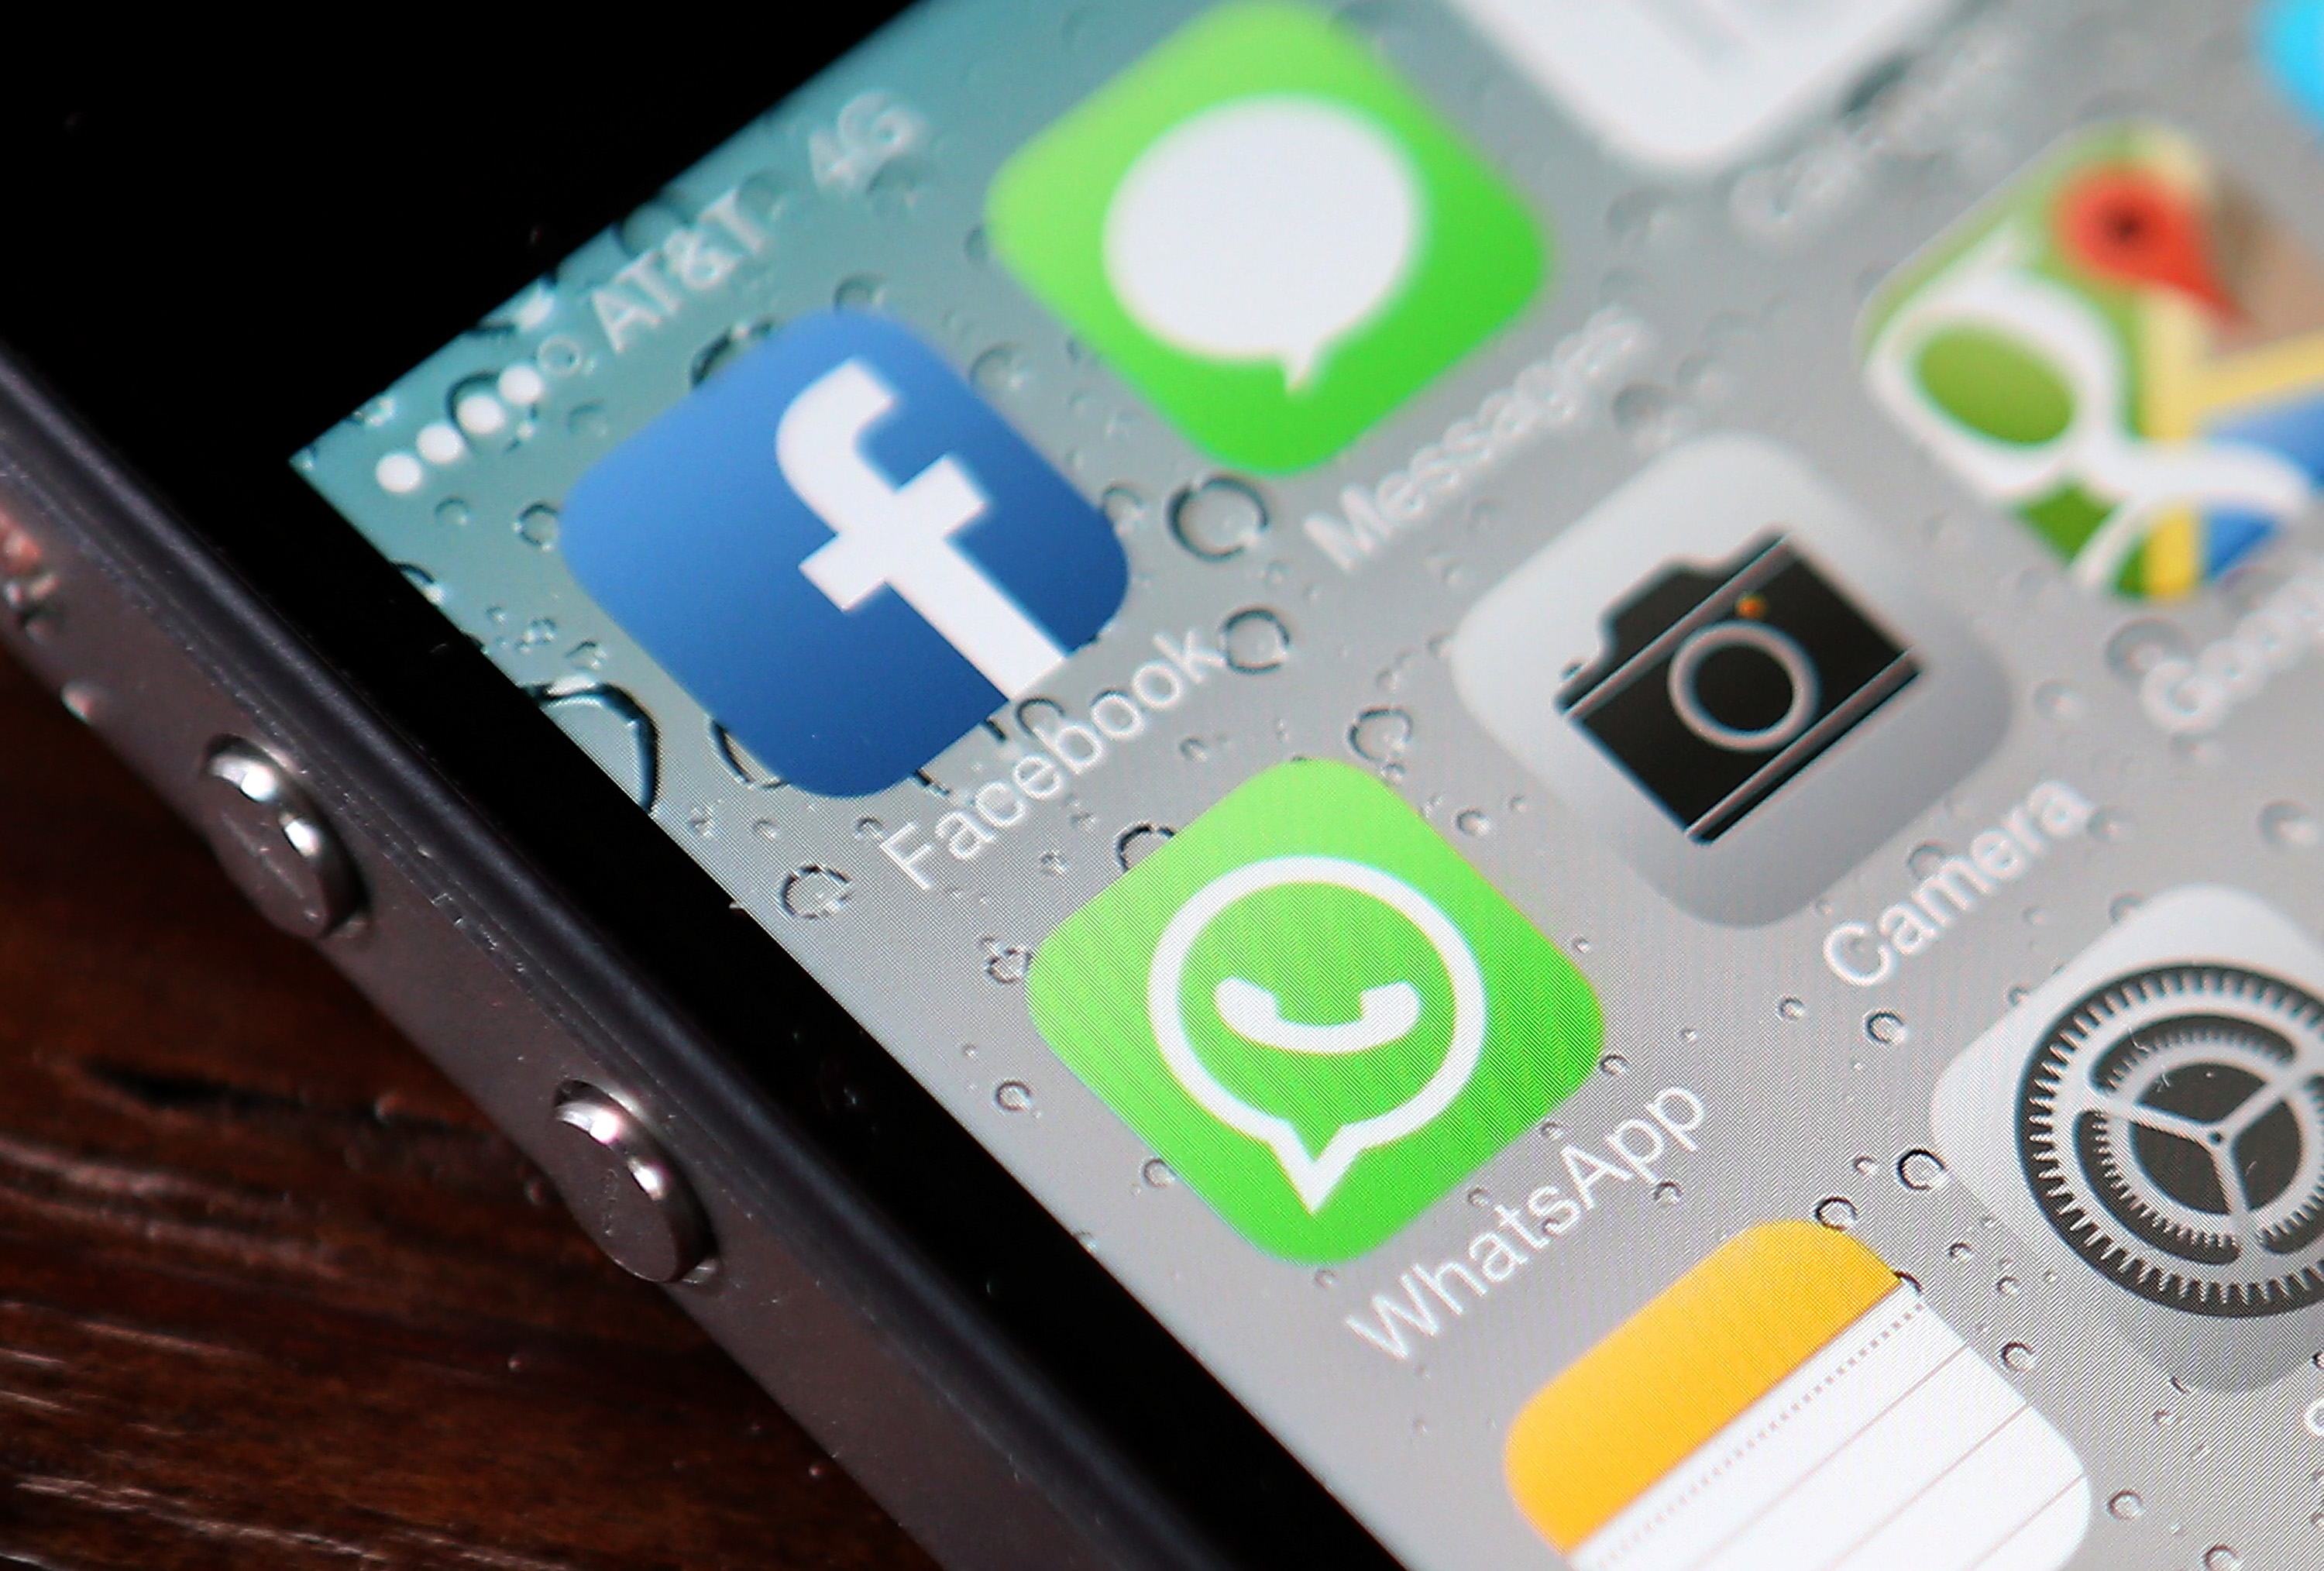 The Facebook and WhatsApp app icons are displayed on an iPhone on February 19, 2014 in San Francisco City.